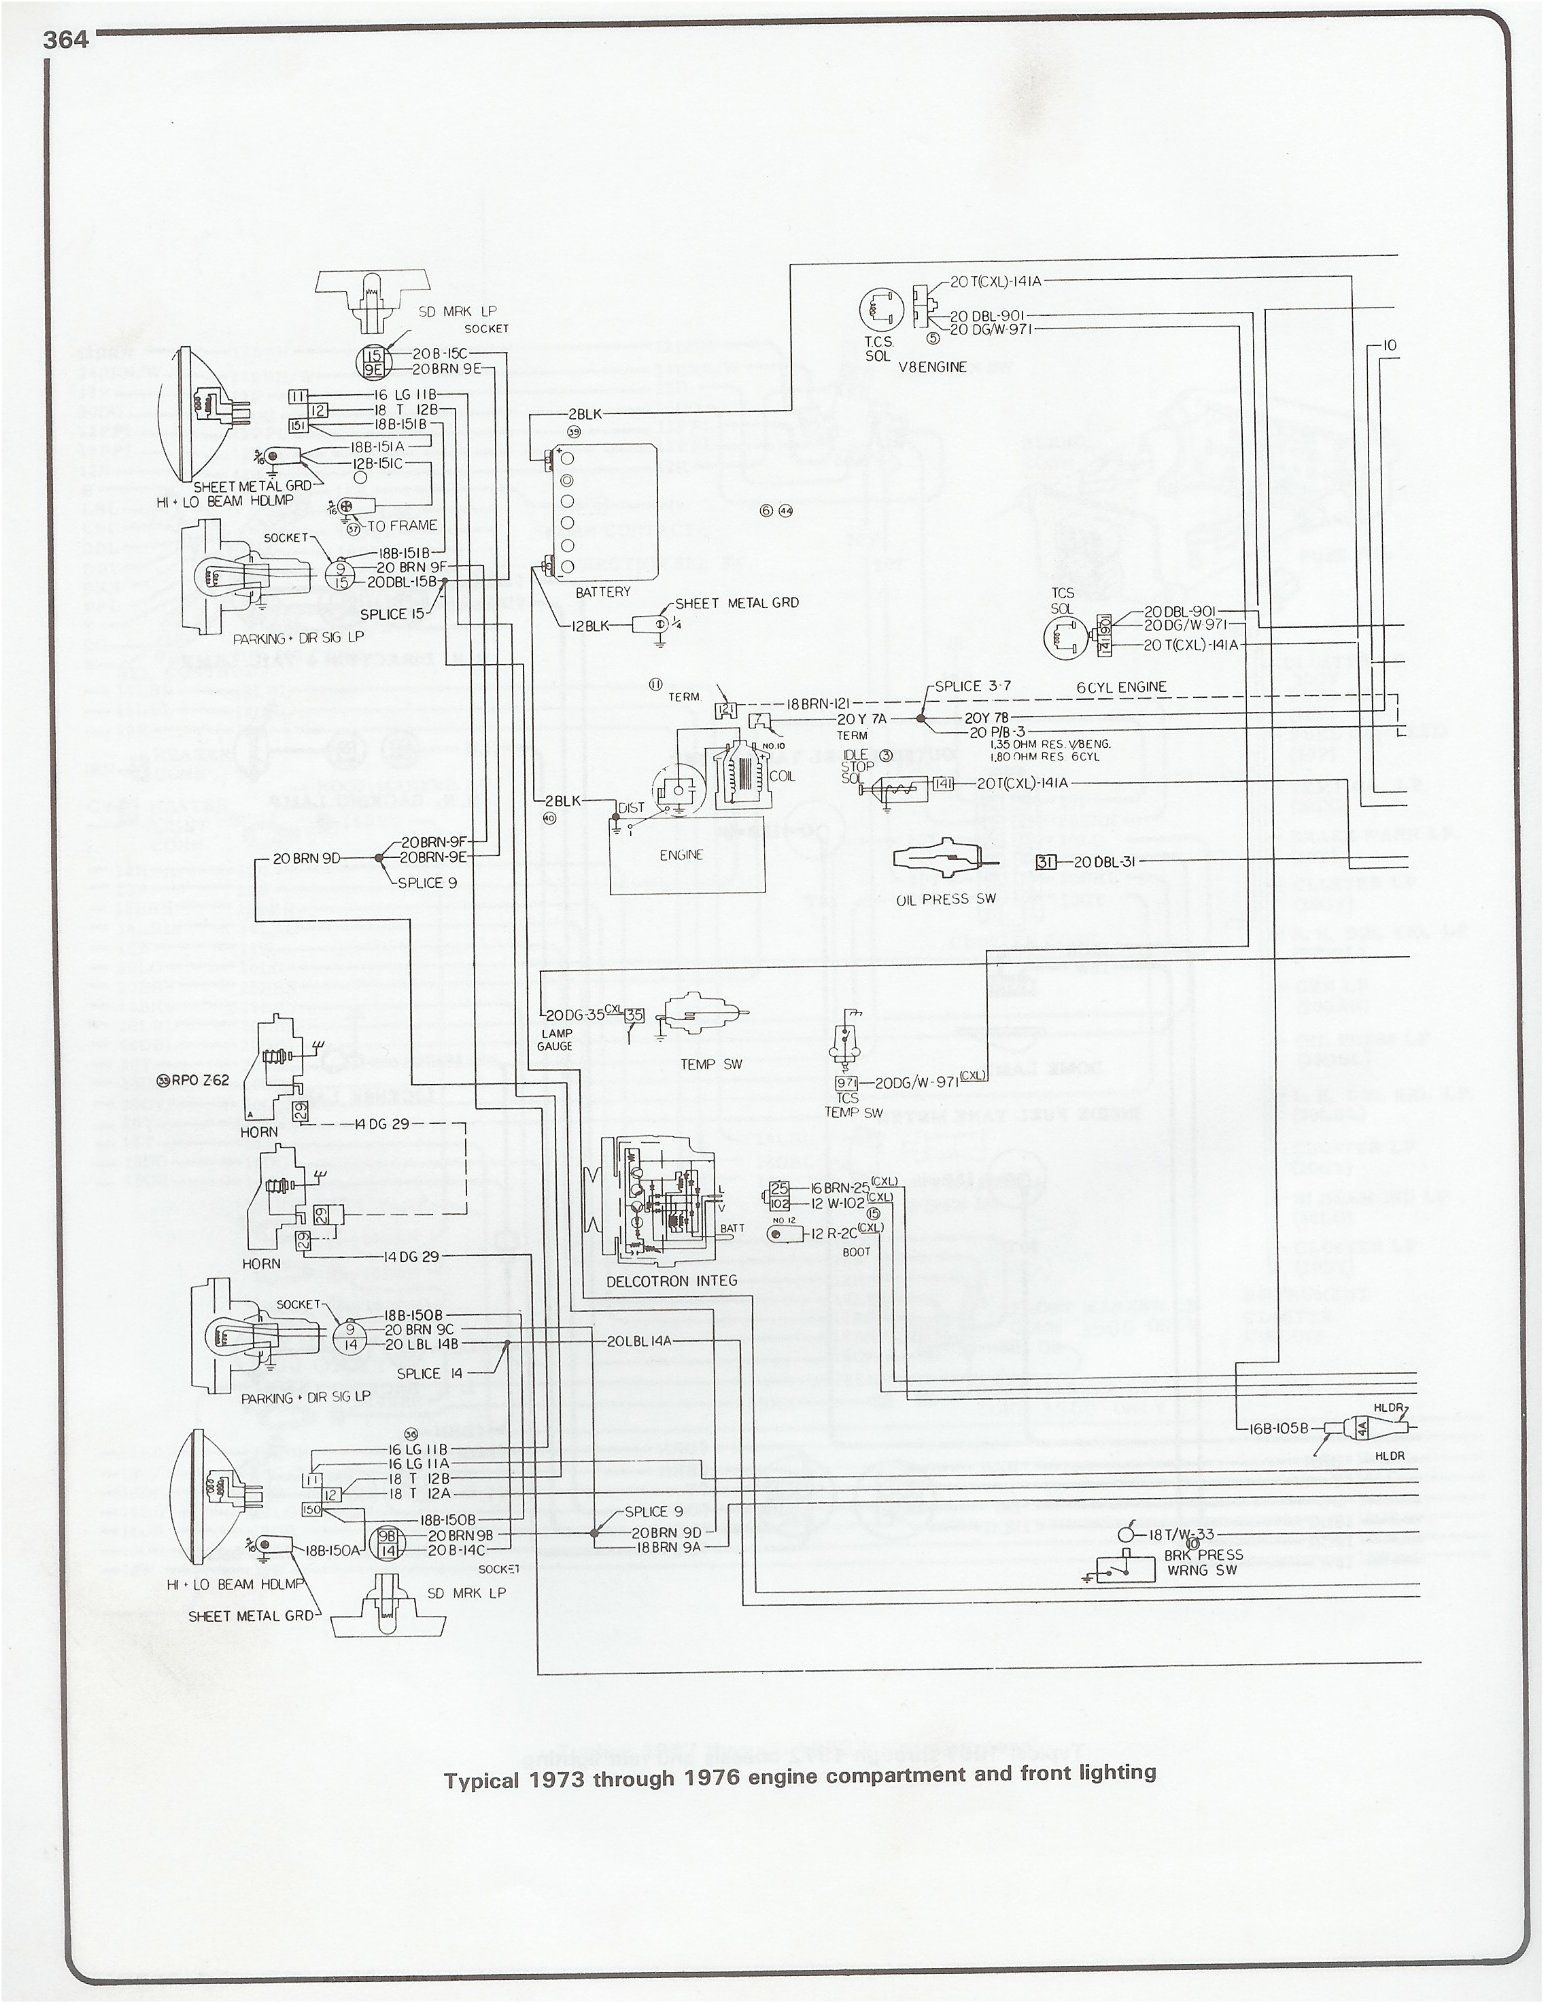 small resolution of wiring diagram 1973 1976 chevy pickup chevy wiring diagram 1976 chevy truck